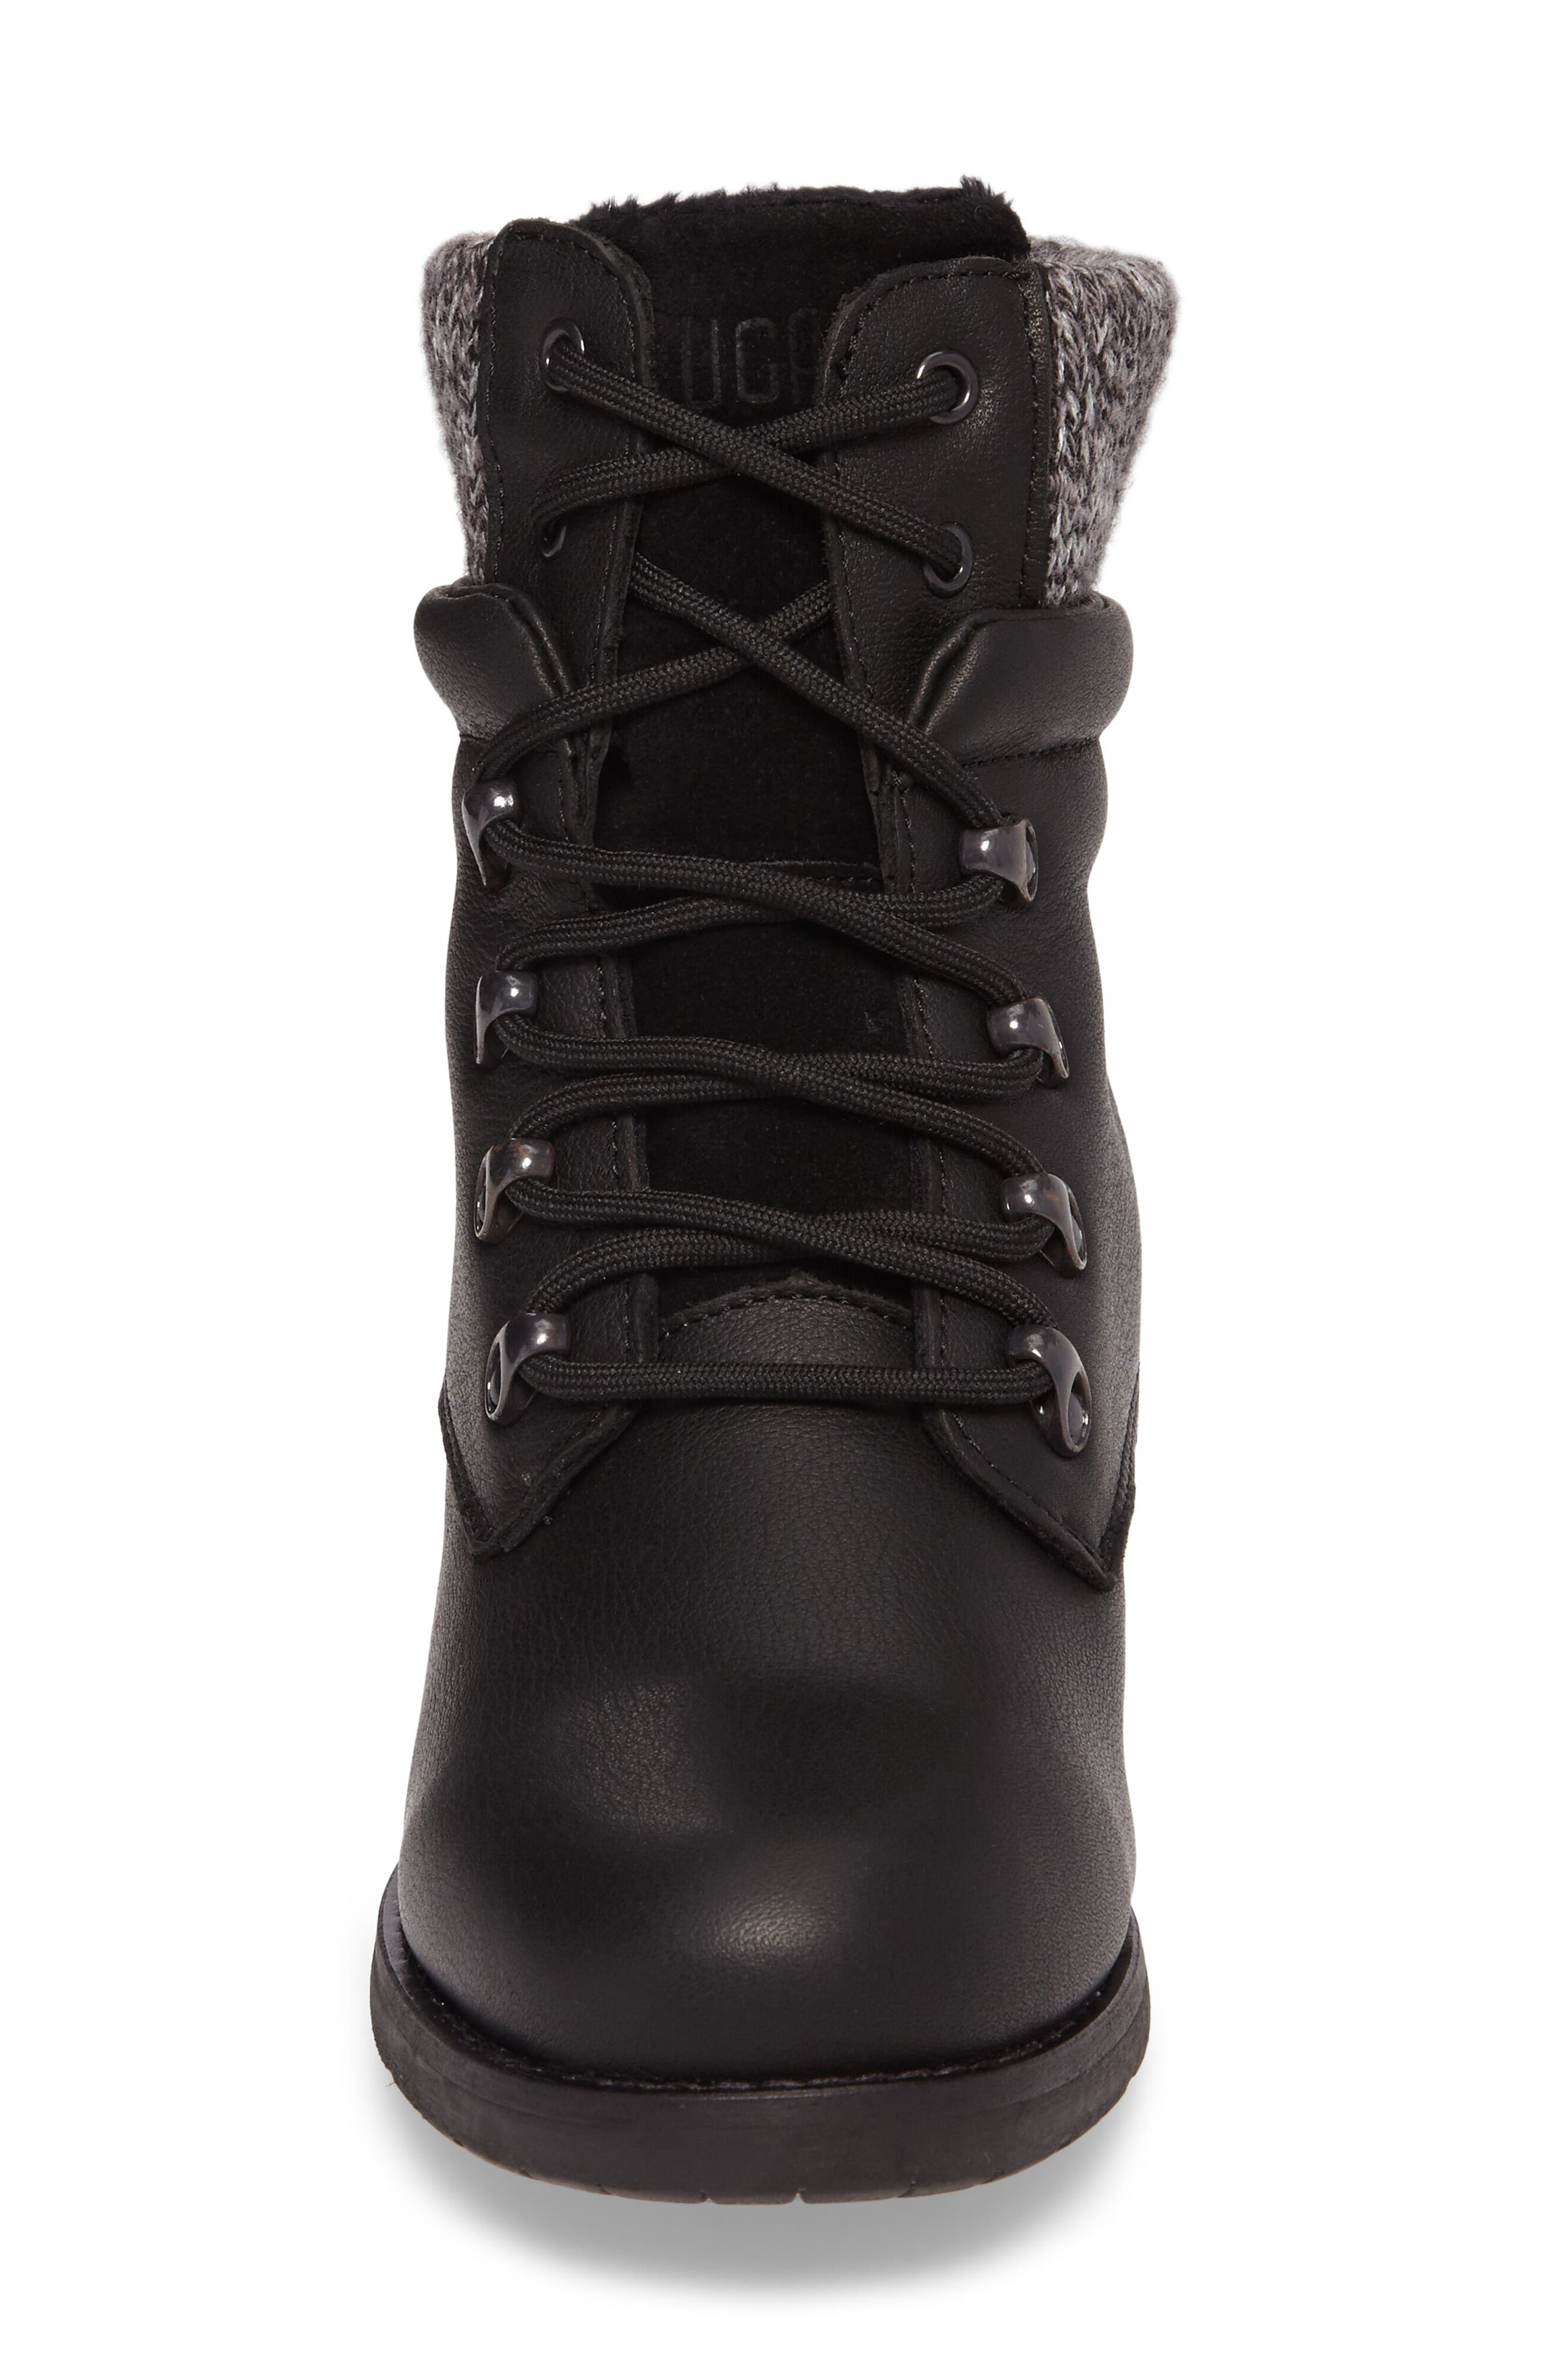 Derry Waterproof Boot,                             Alternate thumbnail 4, color,                             BLACK LEATHER